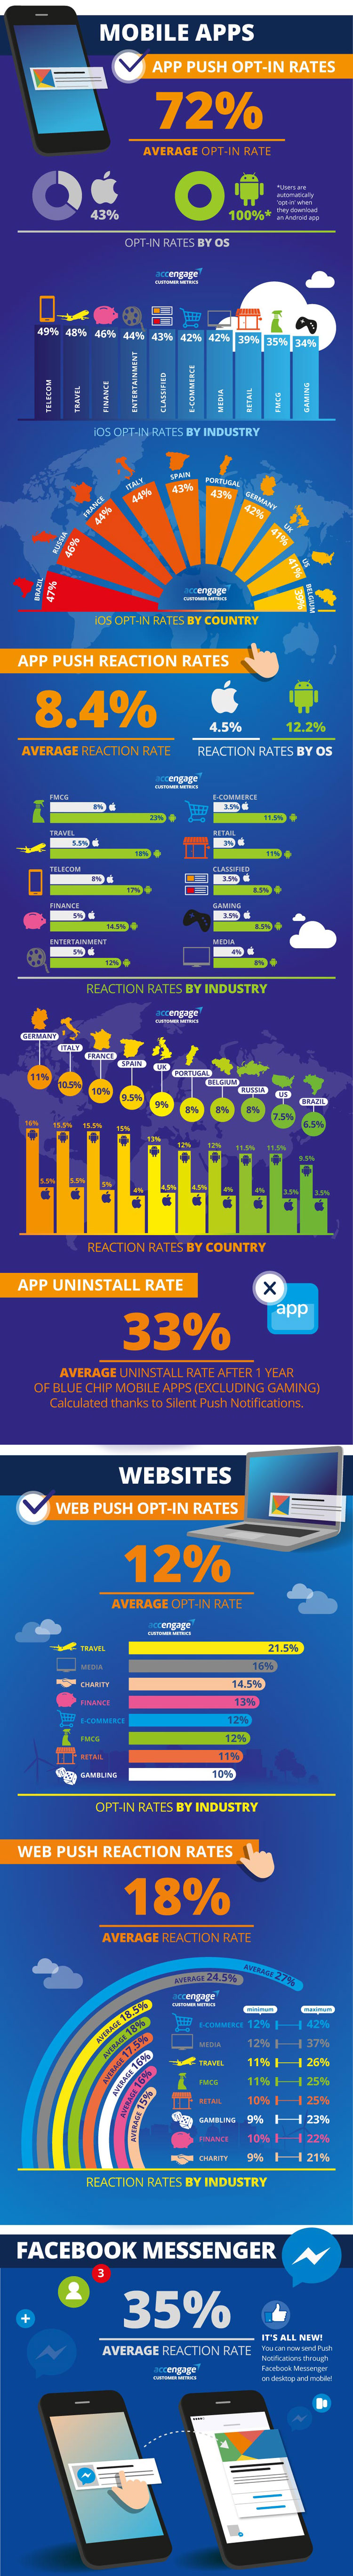 Accengage Push Notification Benchmark Infographic